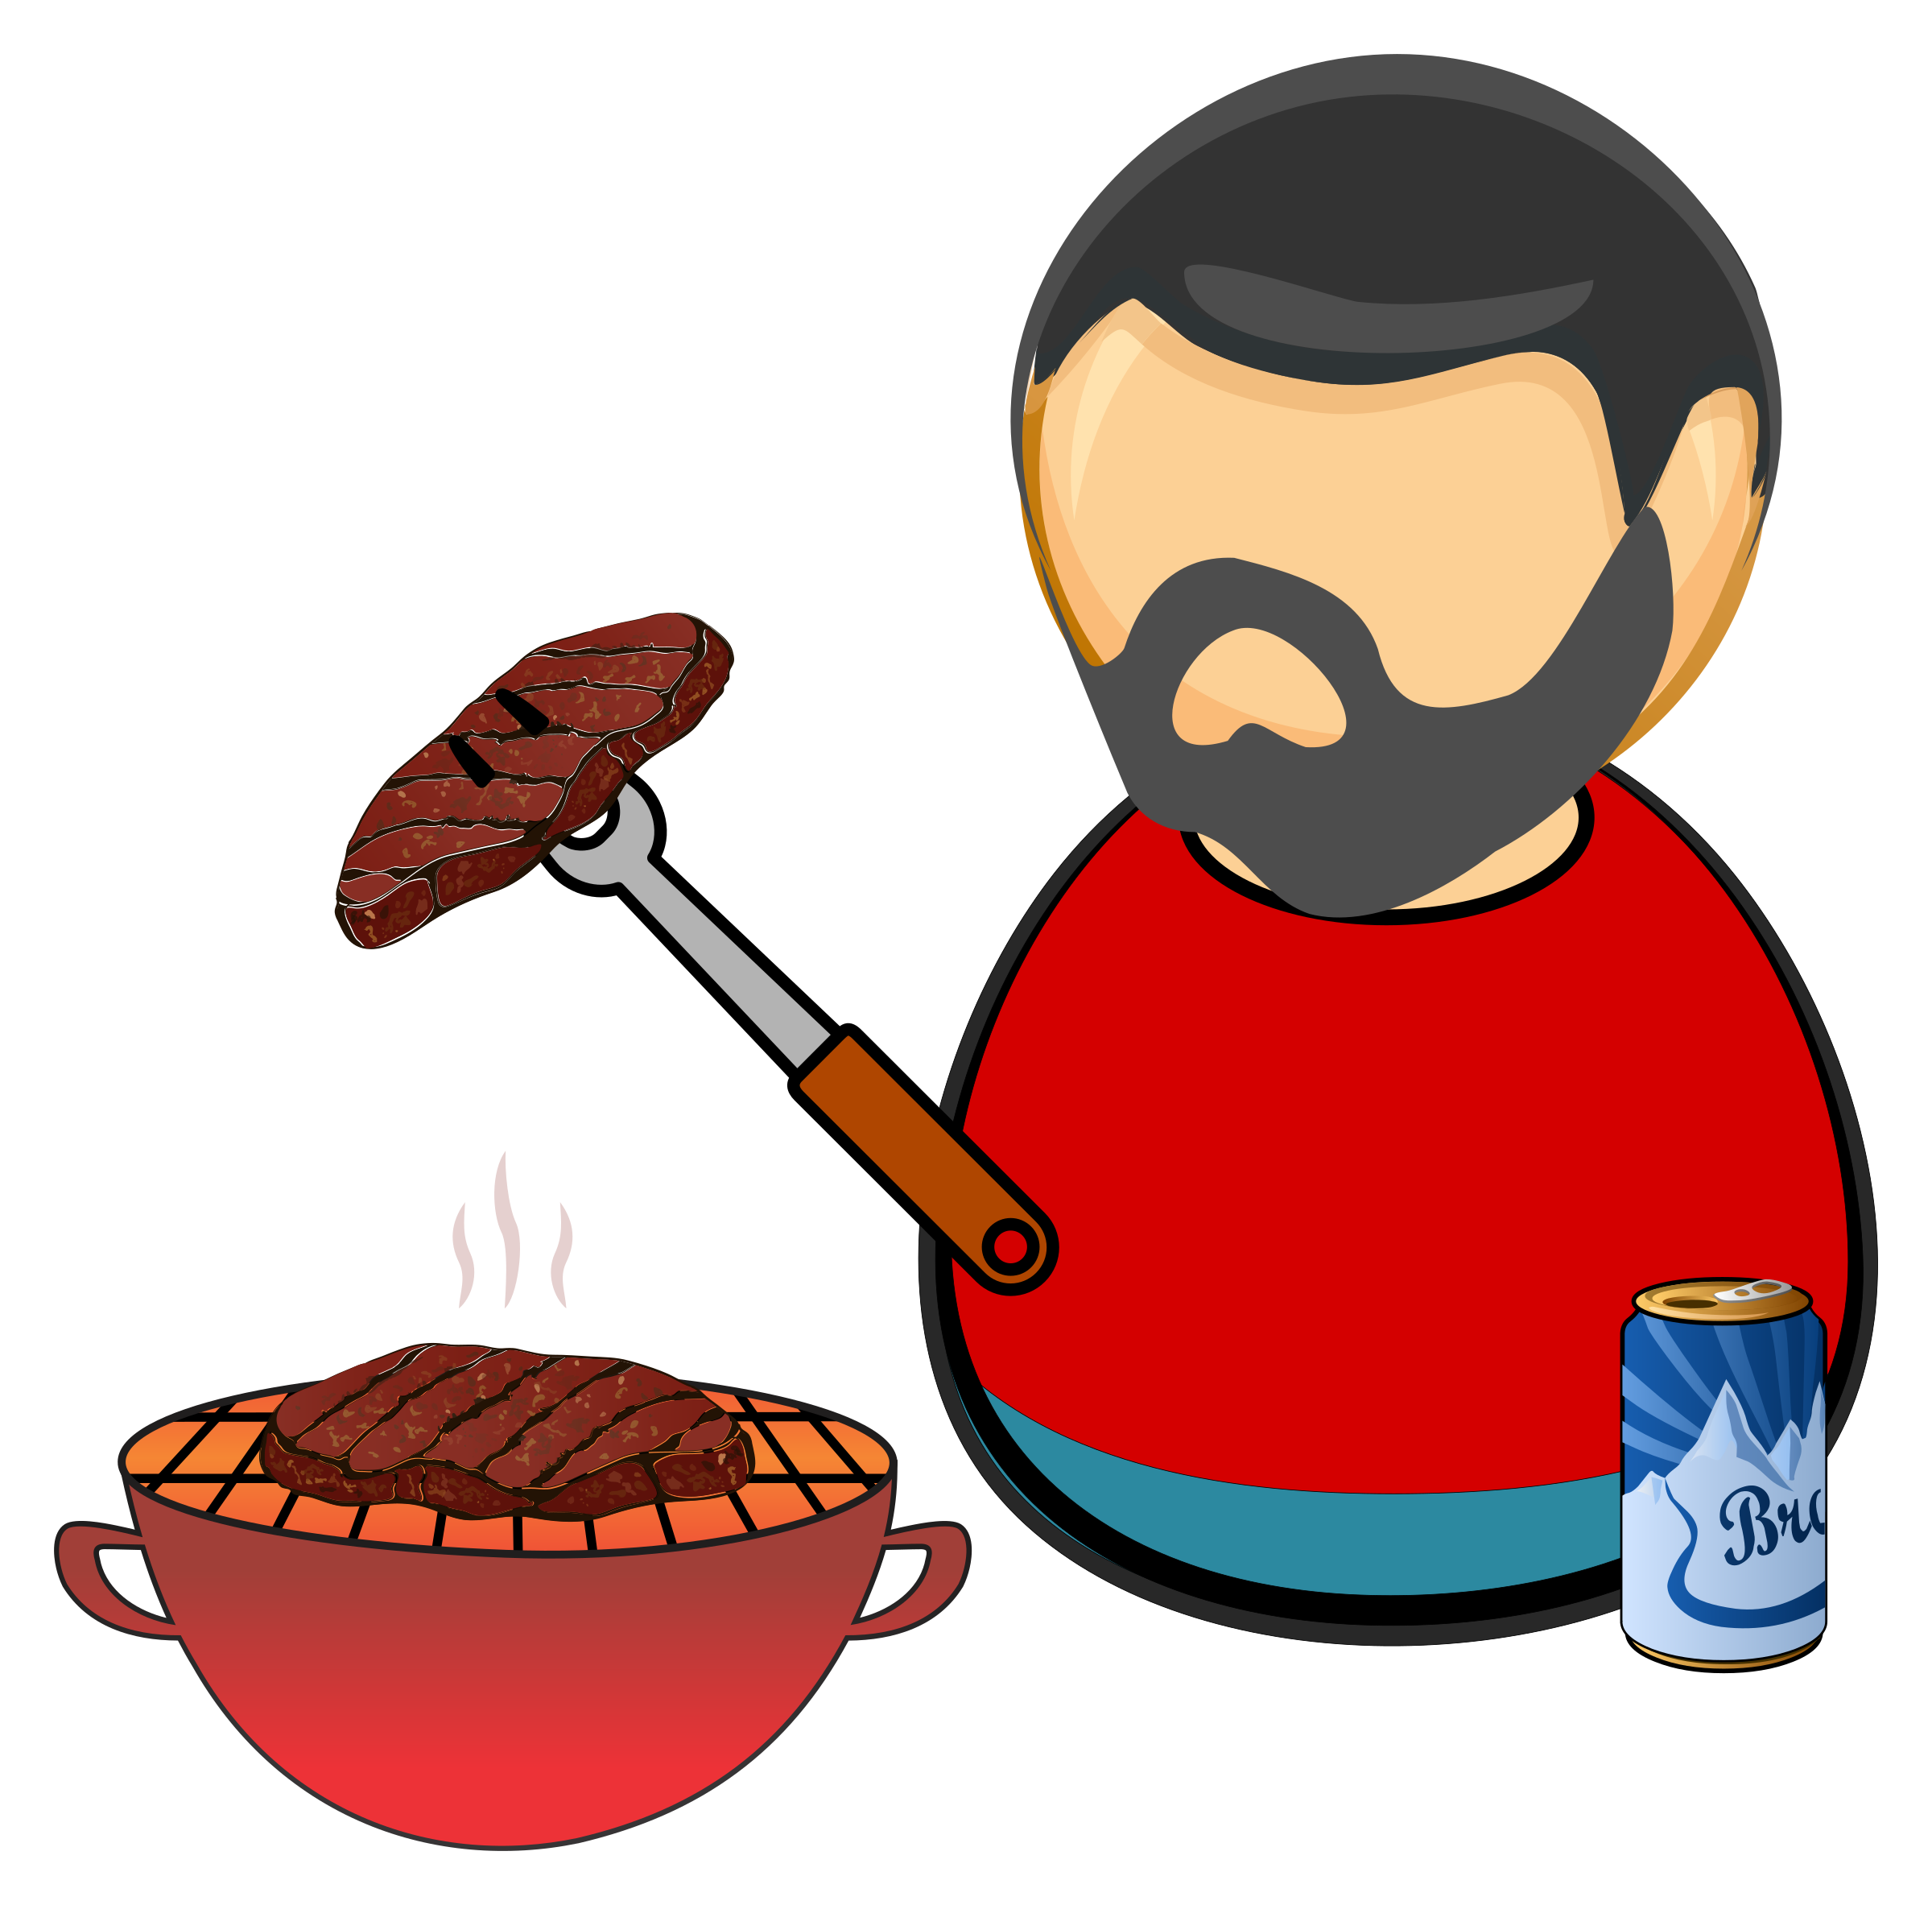 Barbecue guy by Juhele